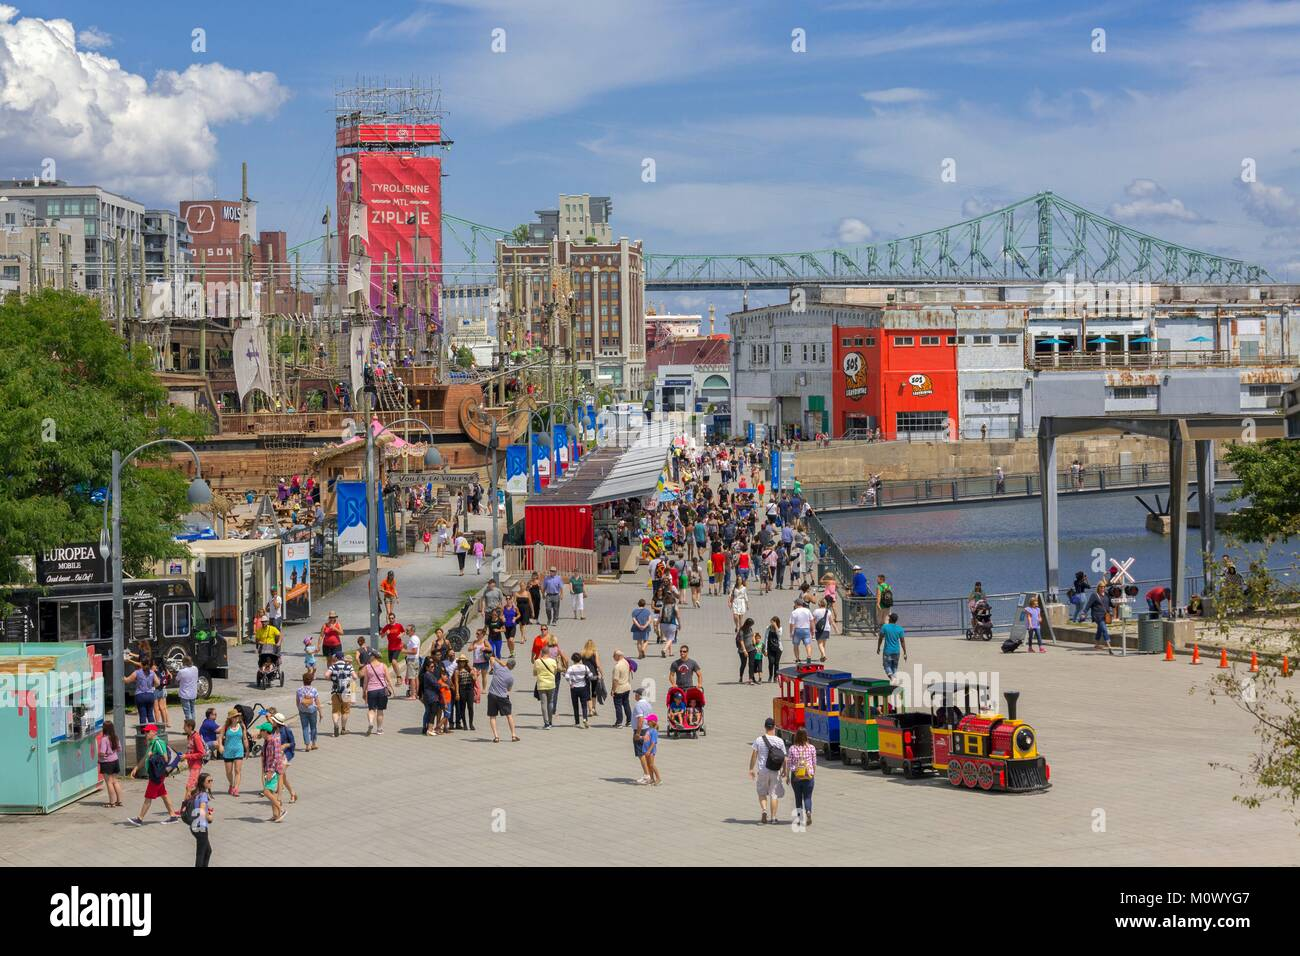 Canada,Quebec province,Montreal,Old Montreal,Old Port,Jacques Cartier Wharf and its summer activities - Stock Image